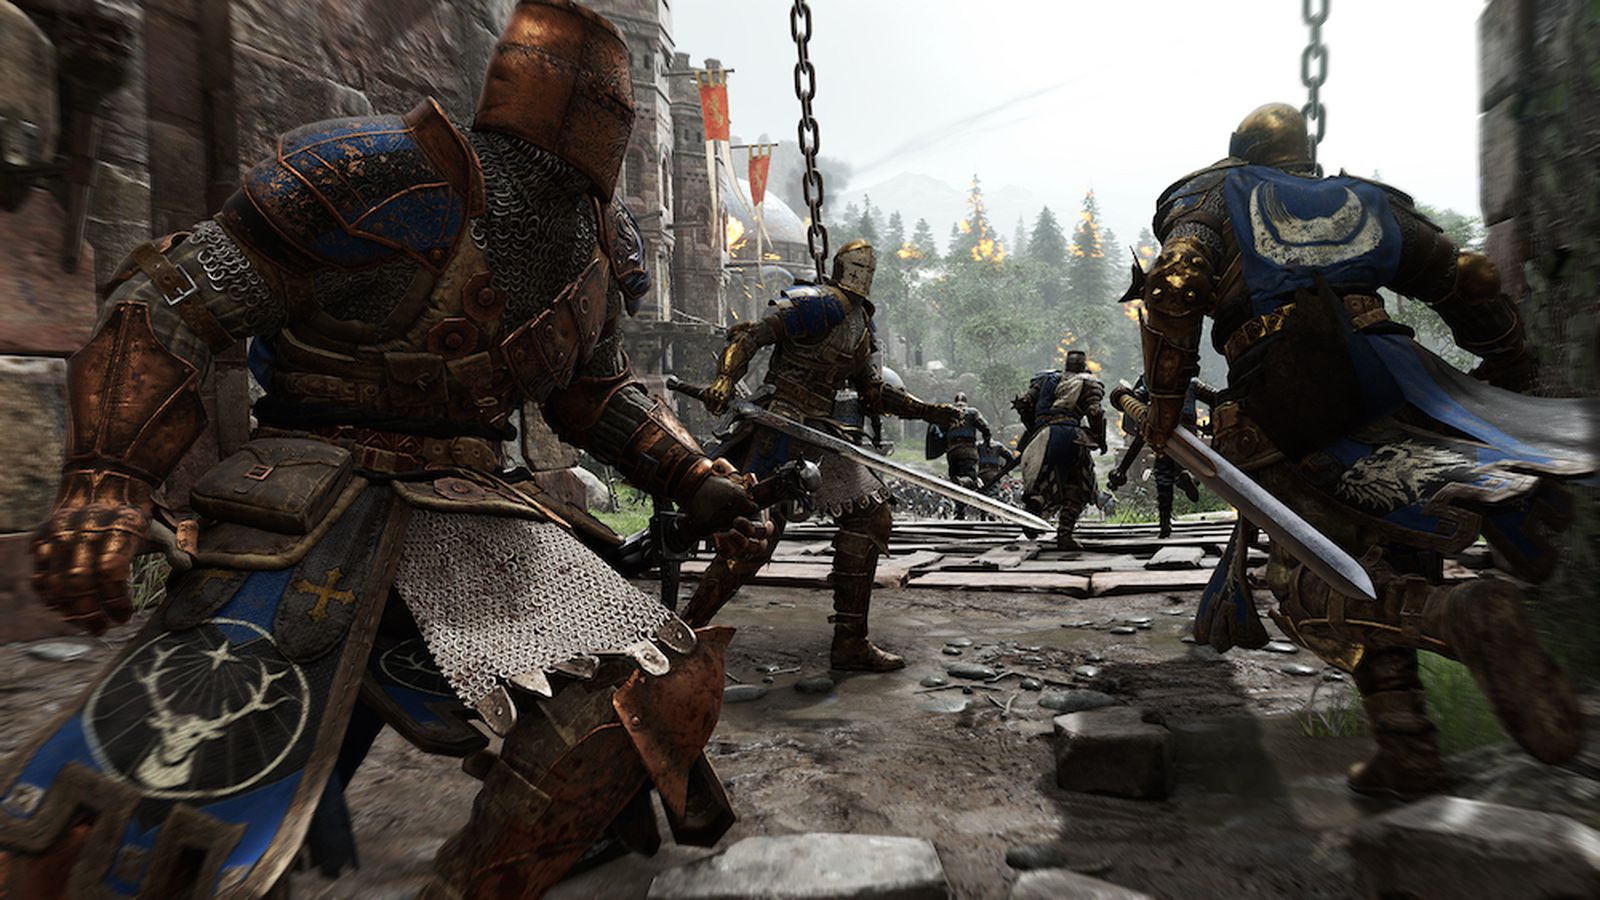 For Honor's accidental alt-right connection